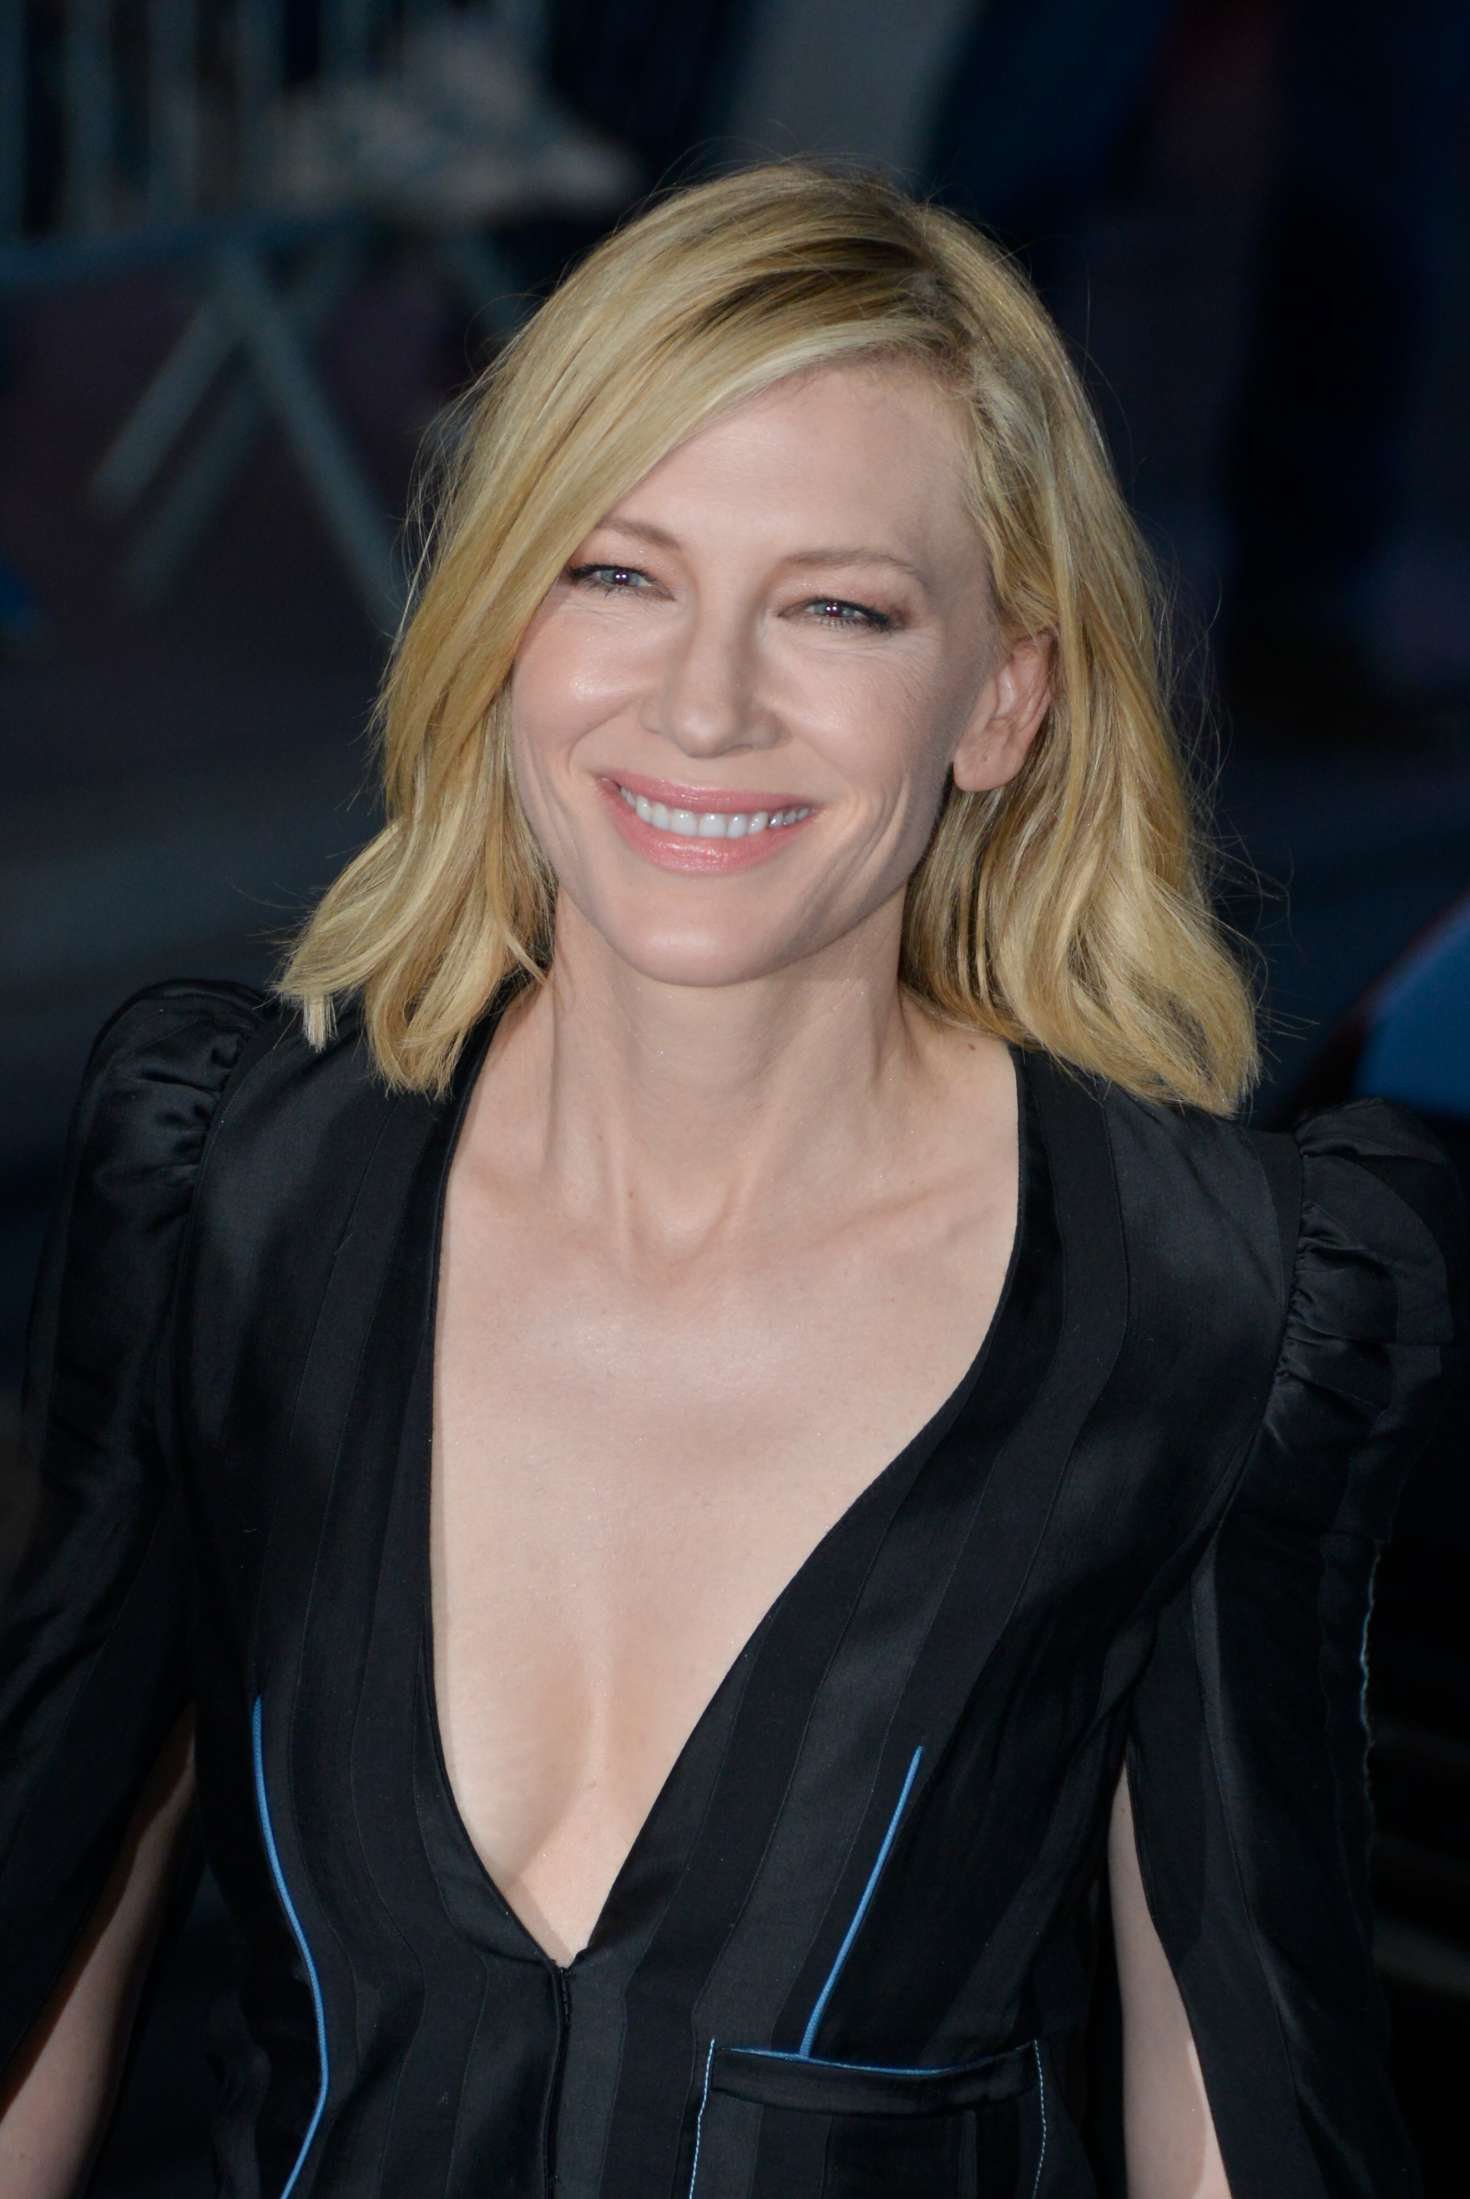 Cate Blanchett - Arrives at the Vanity Fair Party in Cannes